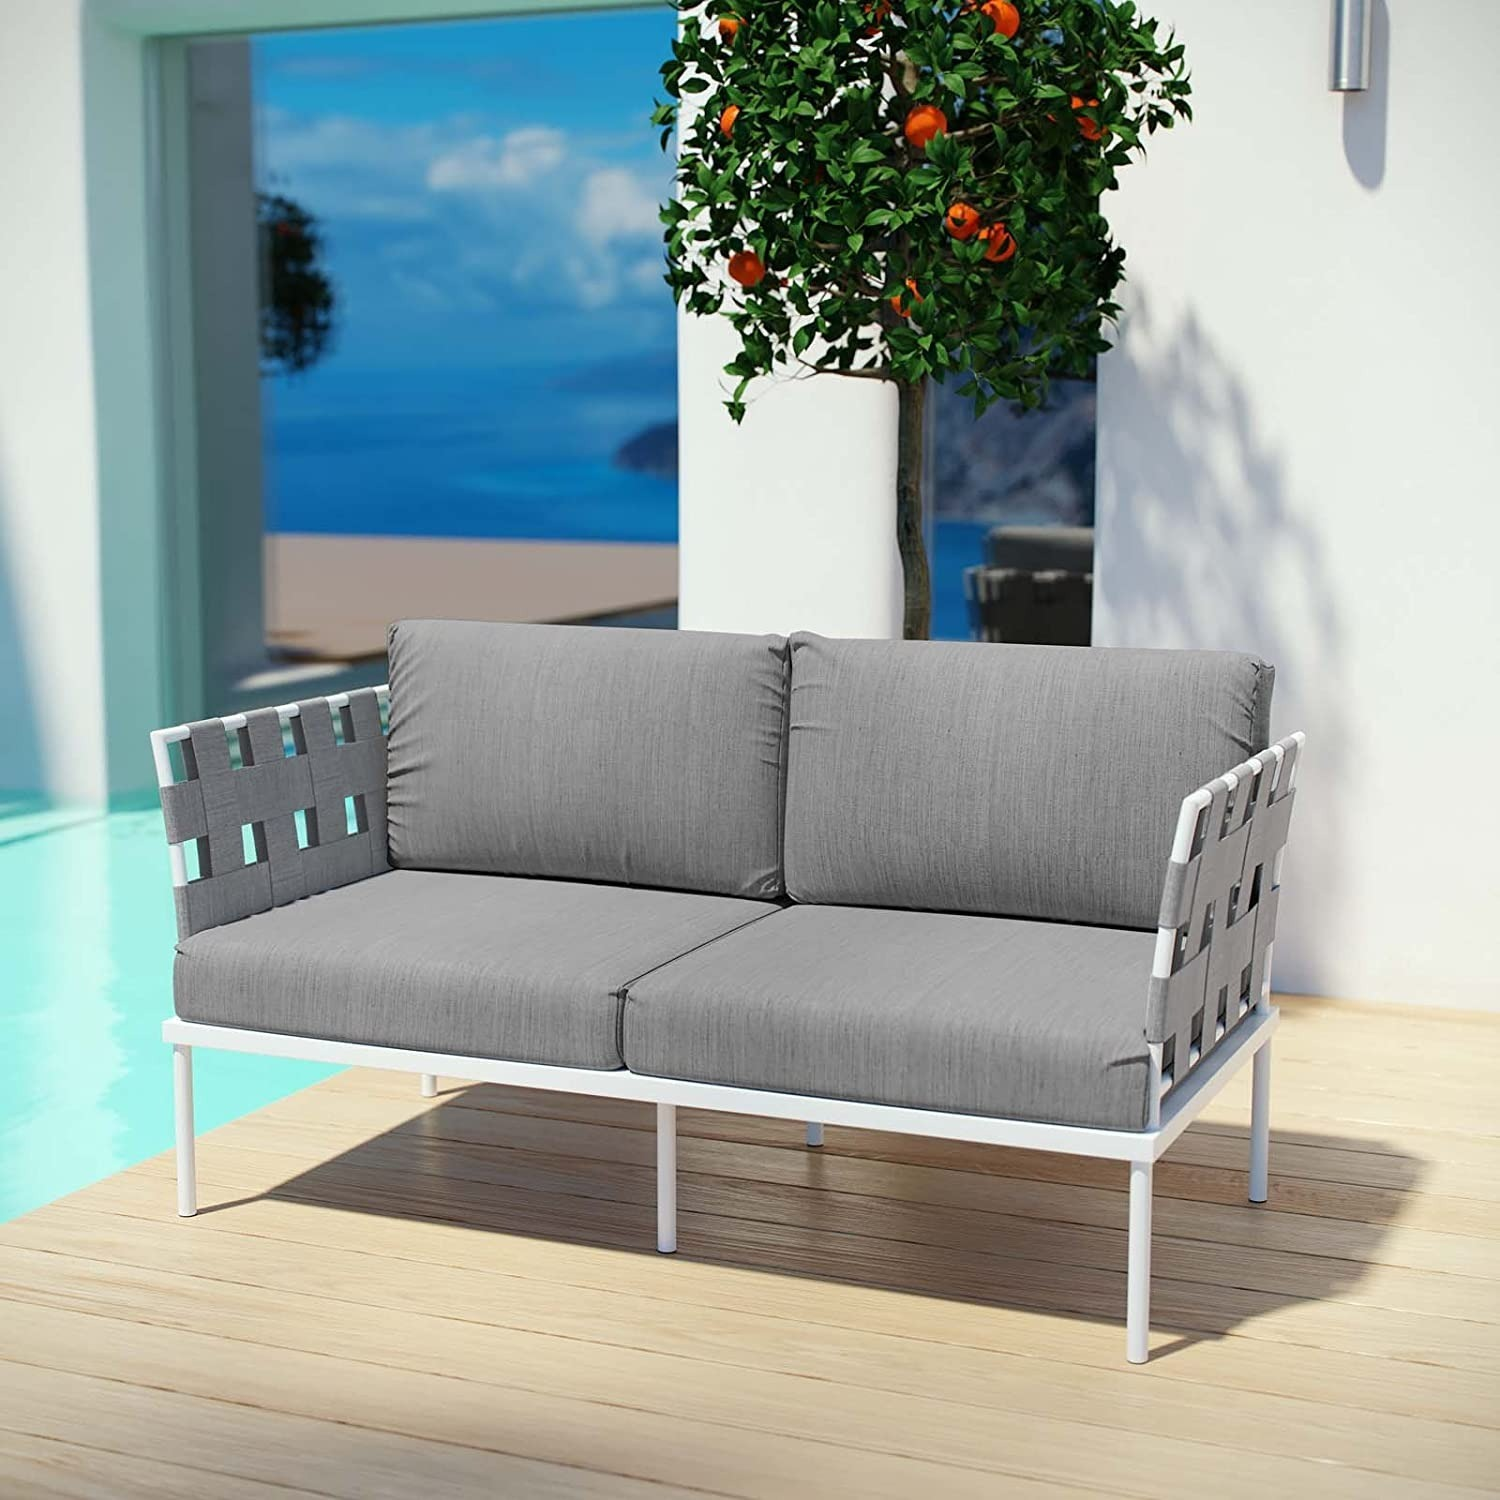 Outdoor Loveseat In Gray Silk Polyester Weave - image-4